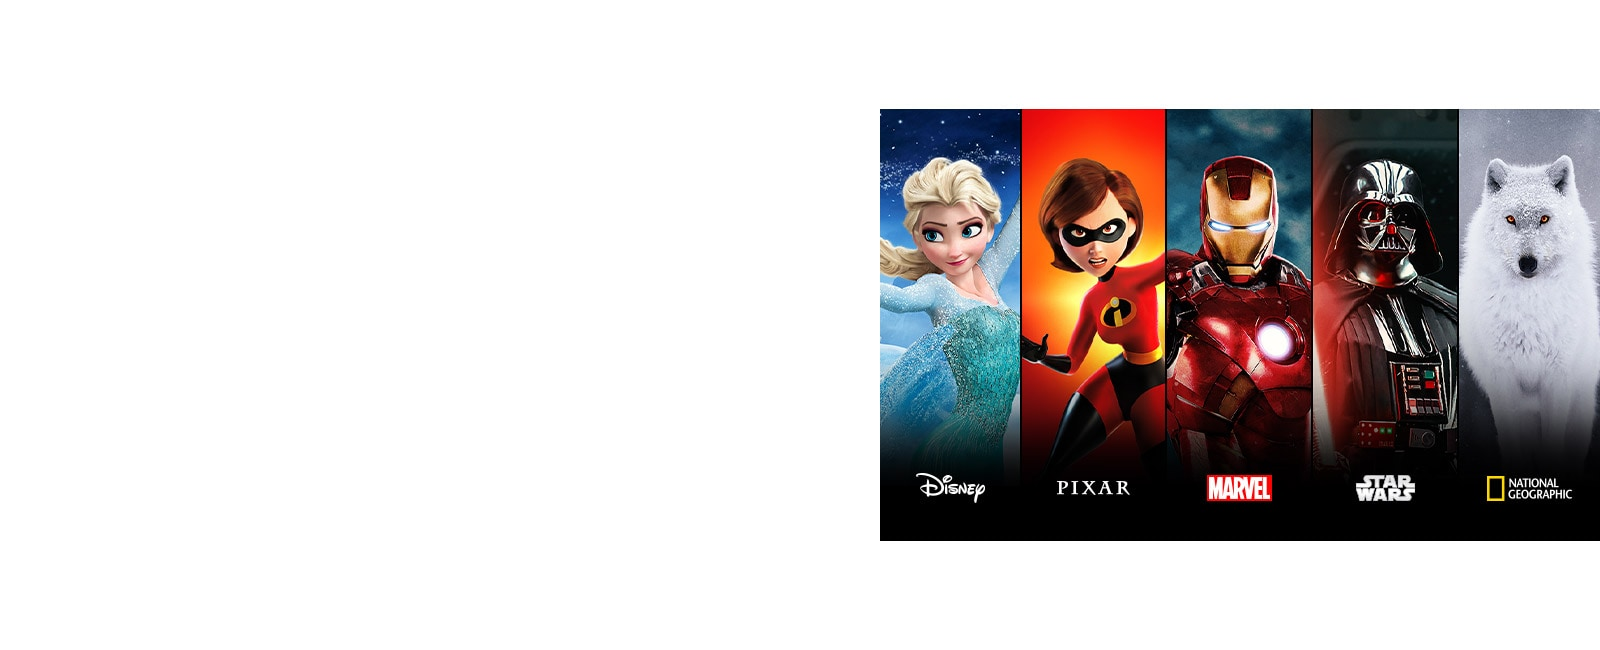 Disney Moana, Pixar Incredibles, Marvel Iron Man, Star Wars, and National Geographic title cards